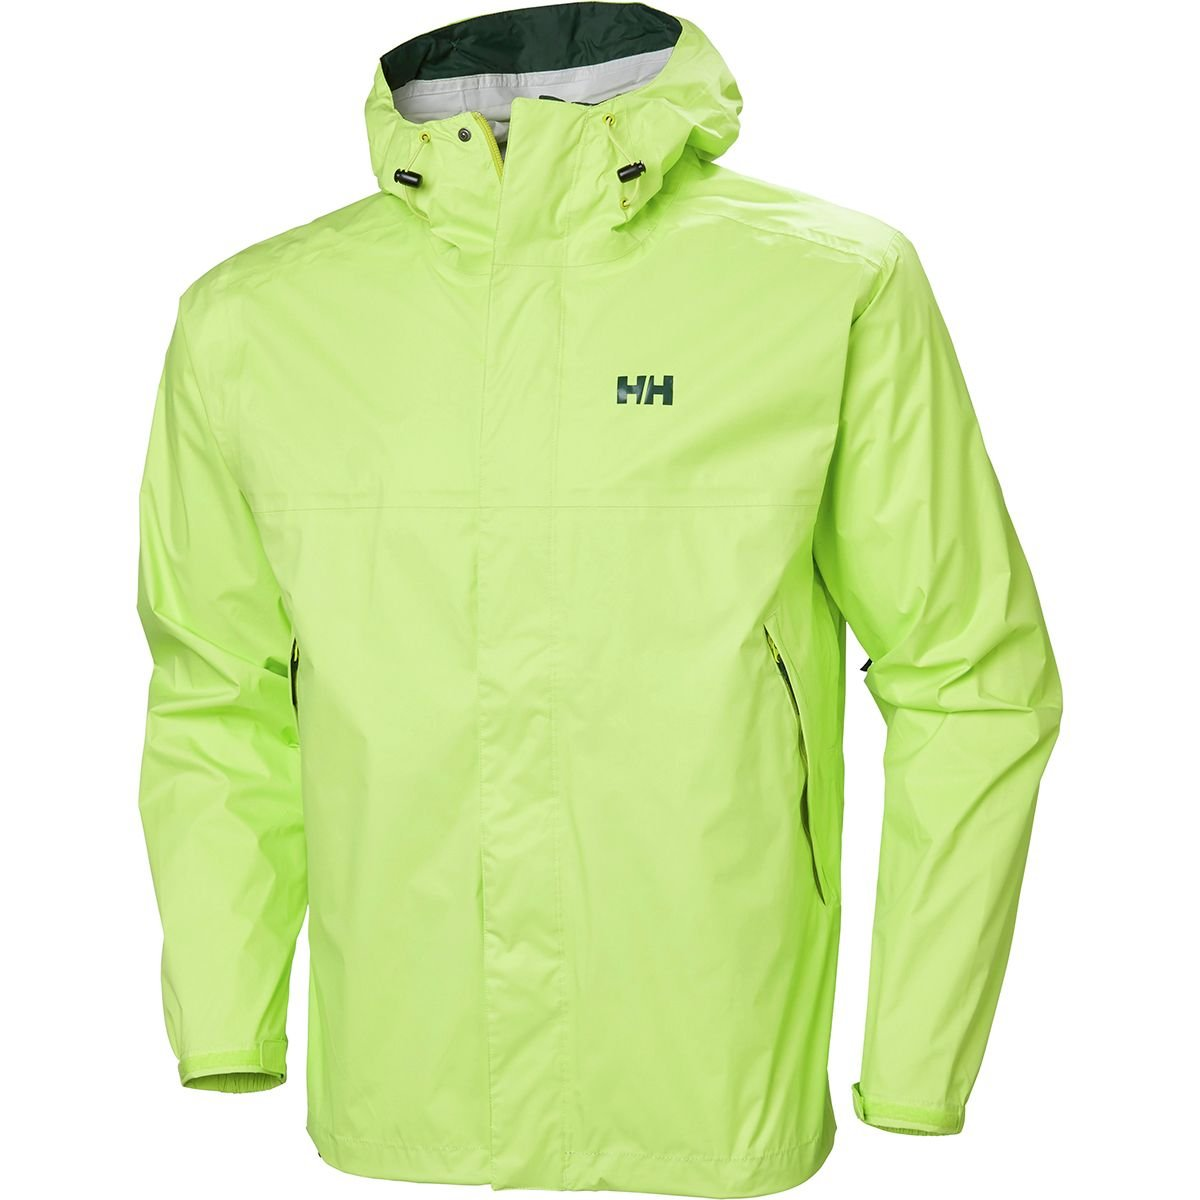 Helly Hansen Men's Loke Waterproof Windproof Breathable Adventure Rain Jacket, 395 Sharp Green, Small by Helly Hansen